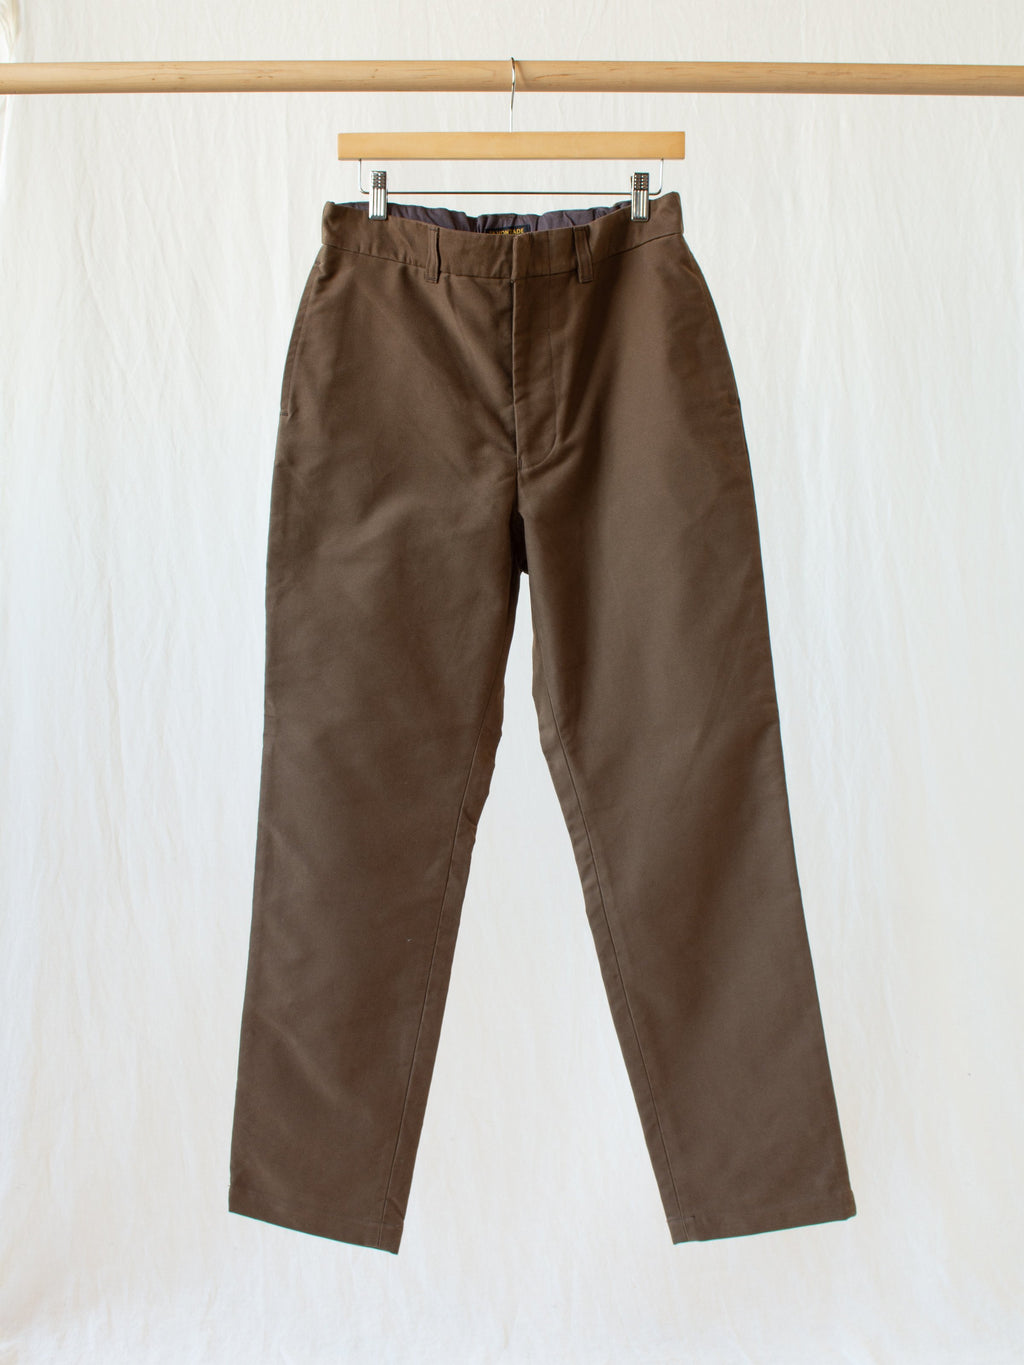 Namu Shop - A Vontade Cotton Moleskin Easy Trousers - Cigar Brown